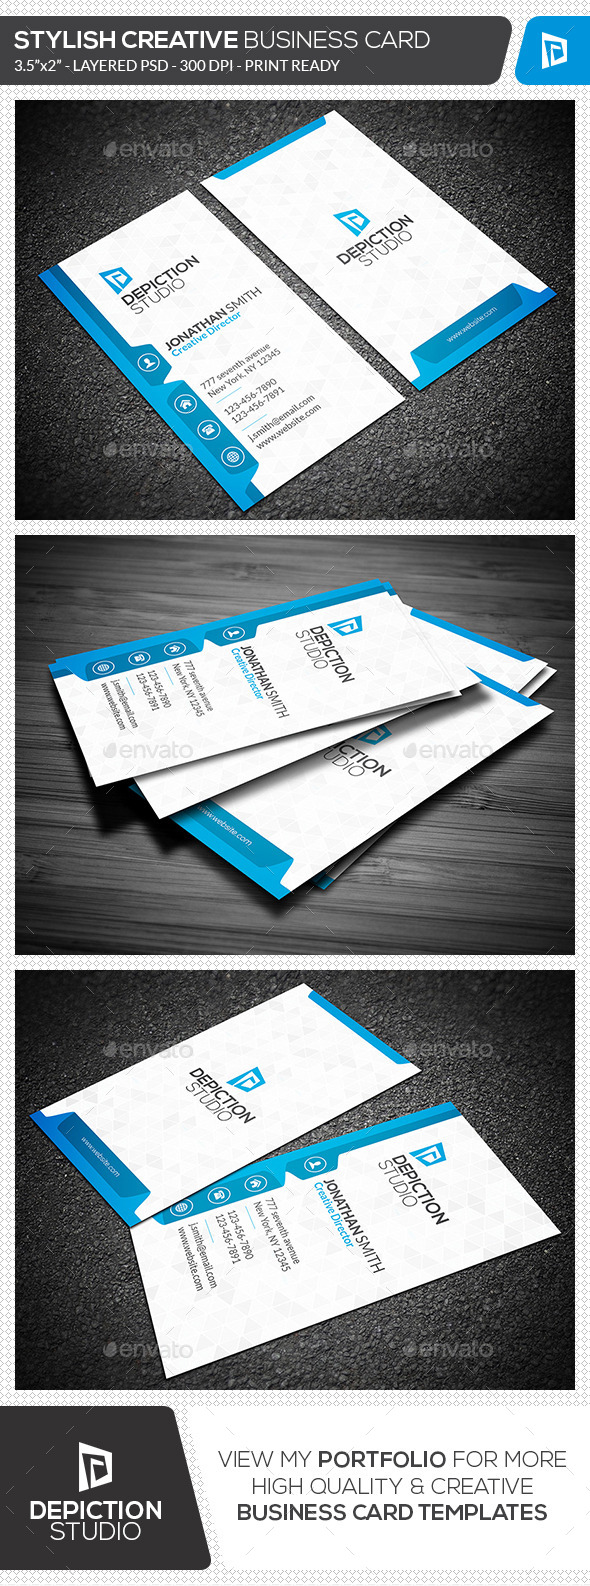 GraphicRiver Stylish Creative Business Card 11352145